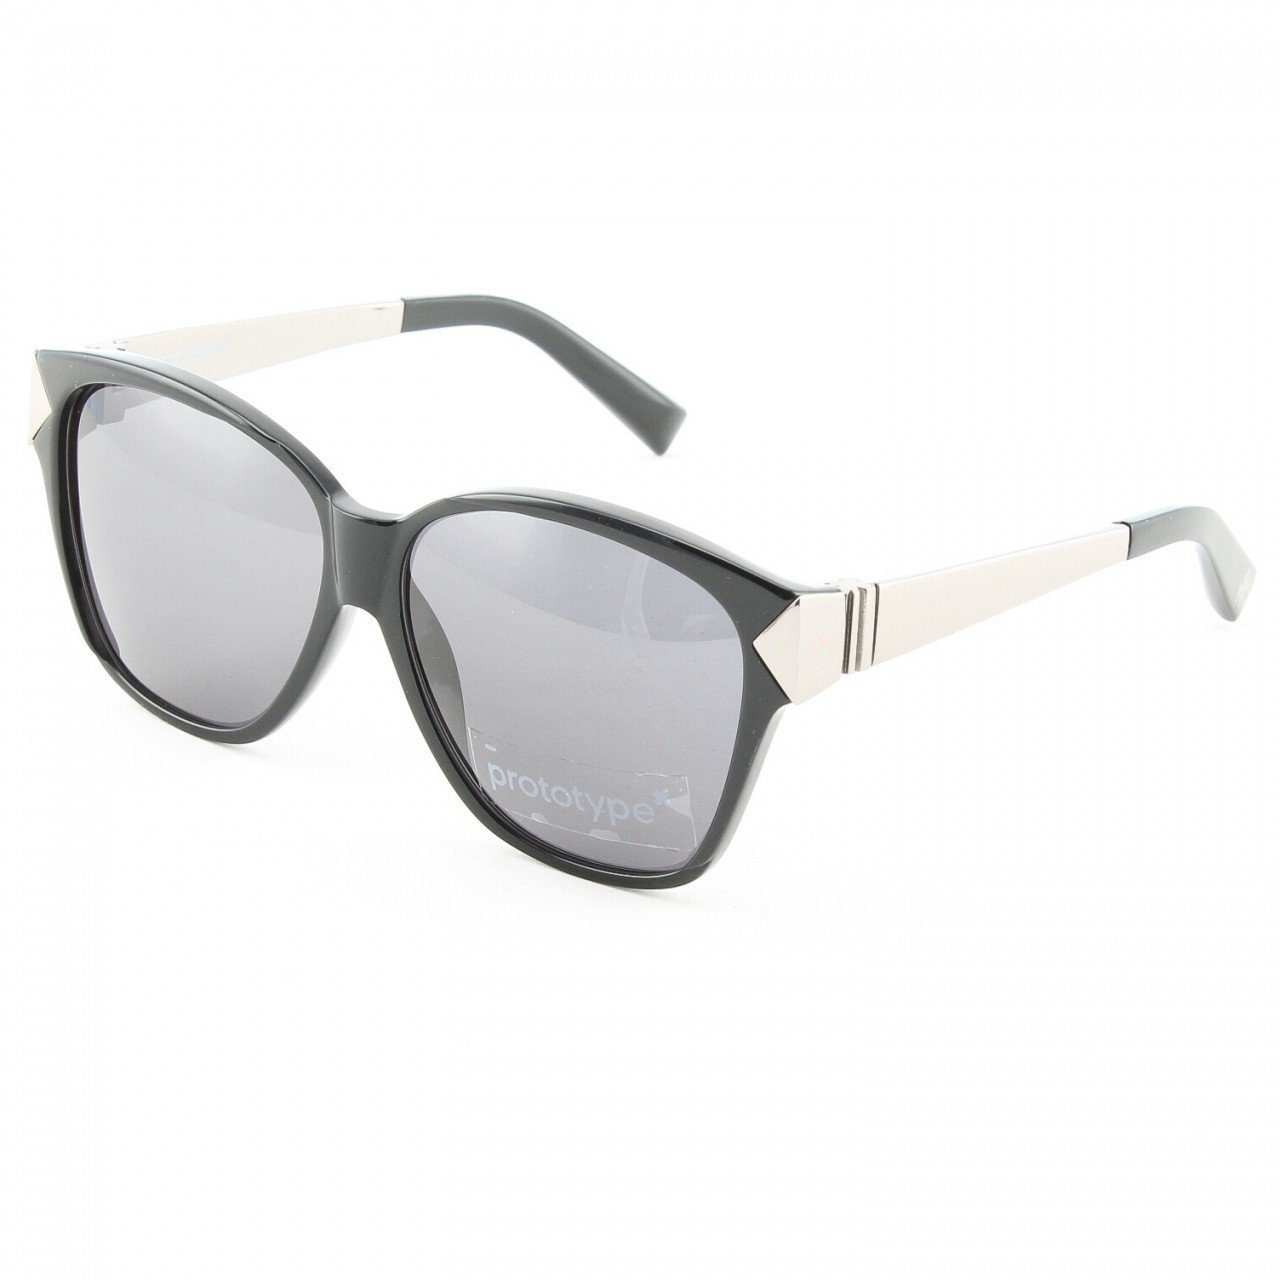 Prototype by Yohji Yamamoto 018 Claw Sunglasses Col. 01 Black Silver with Grey Lenses